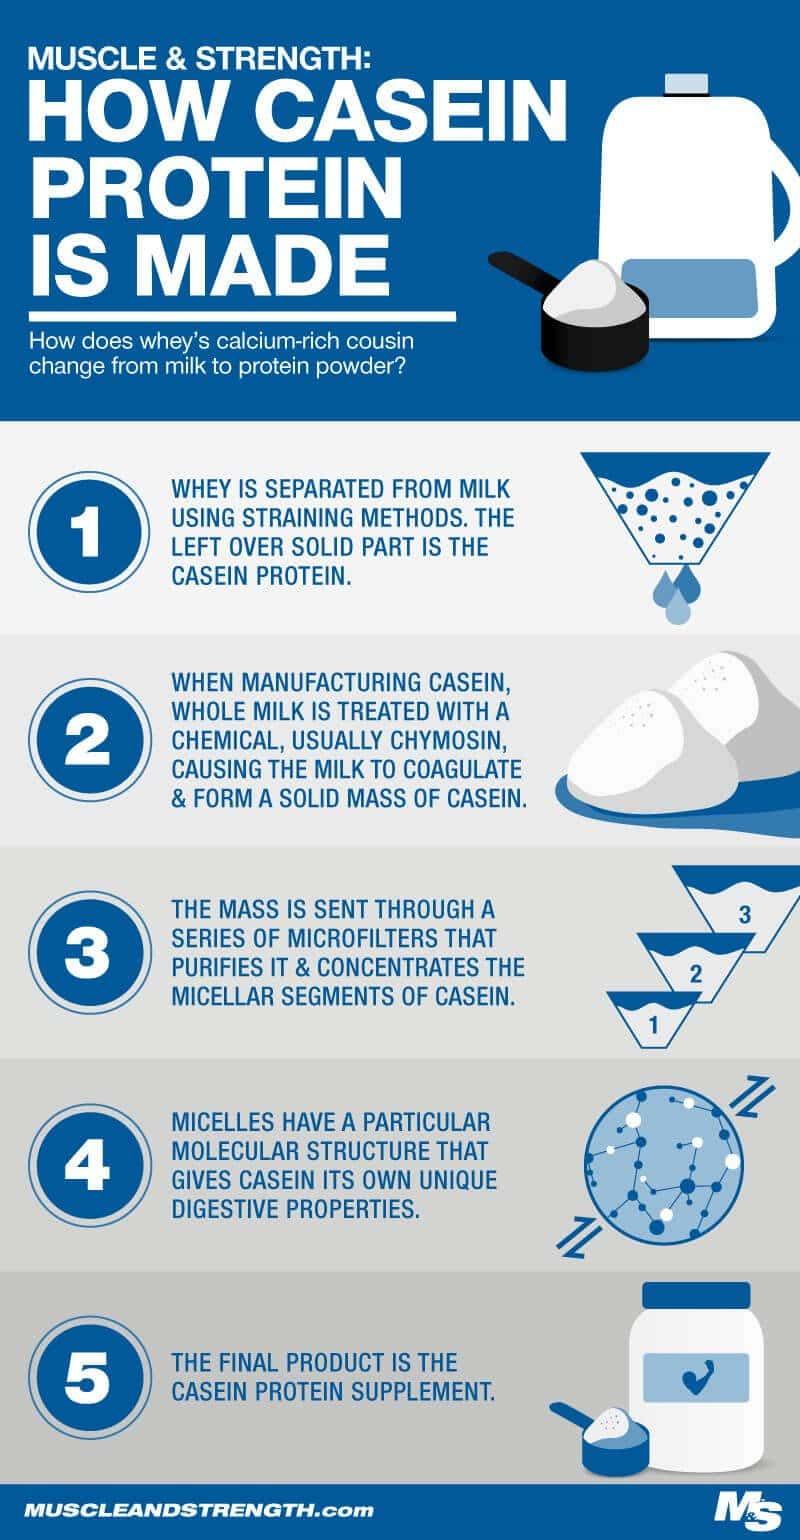 How Casein Protein is Made